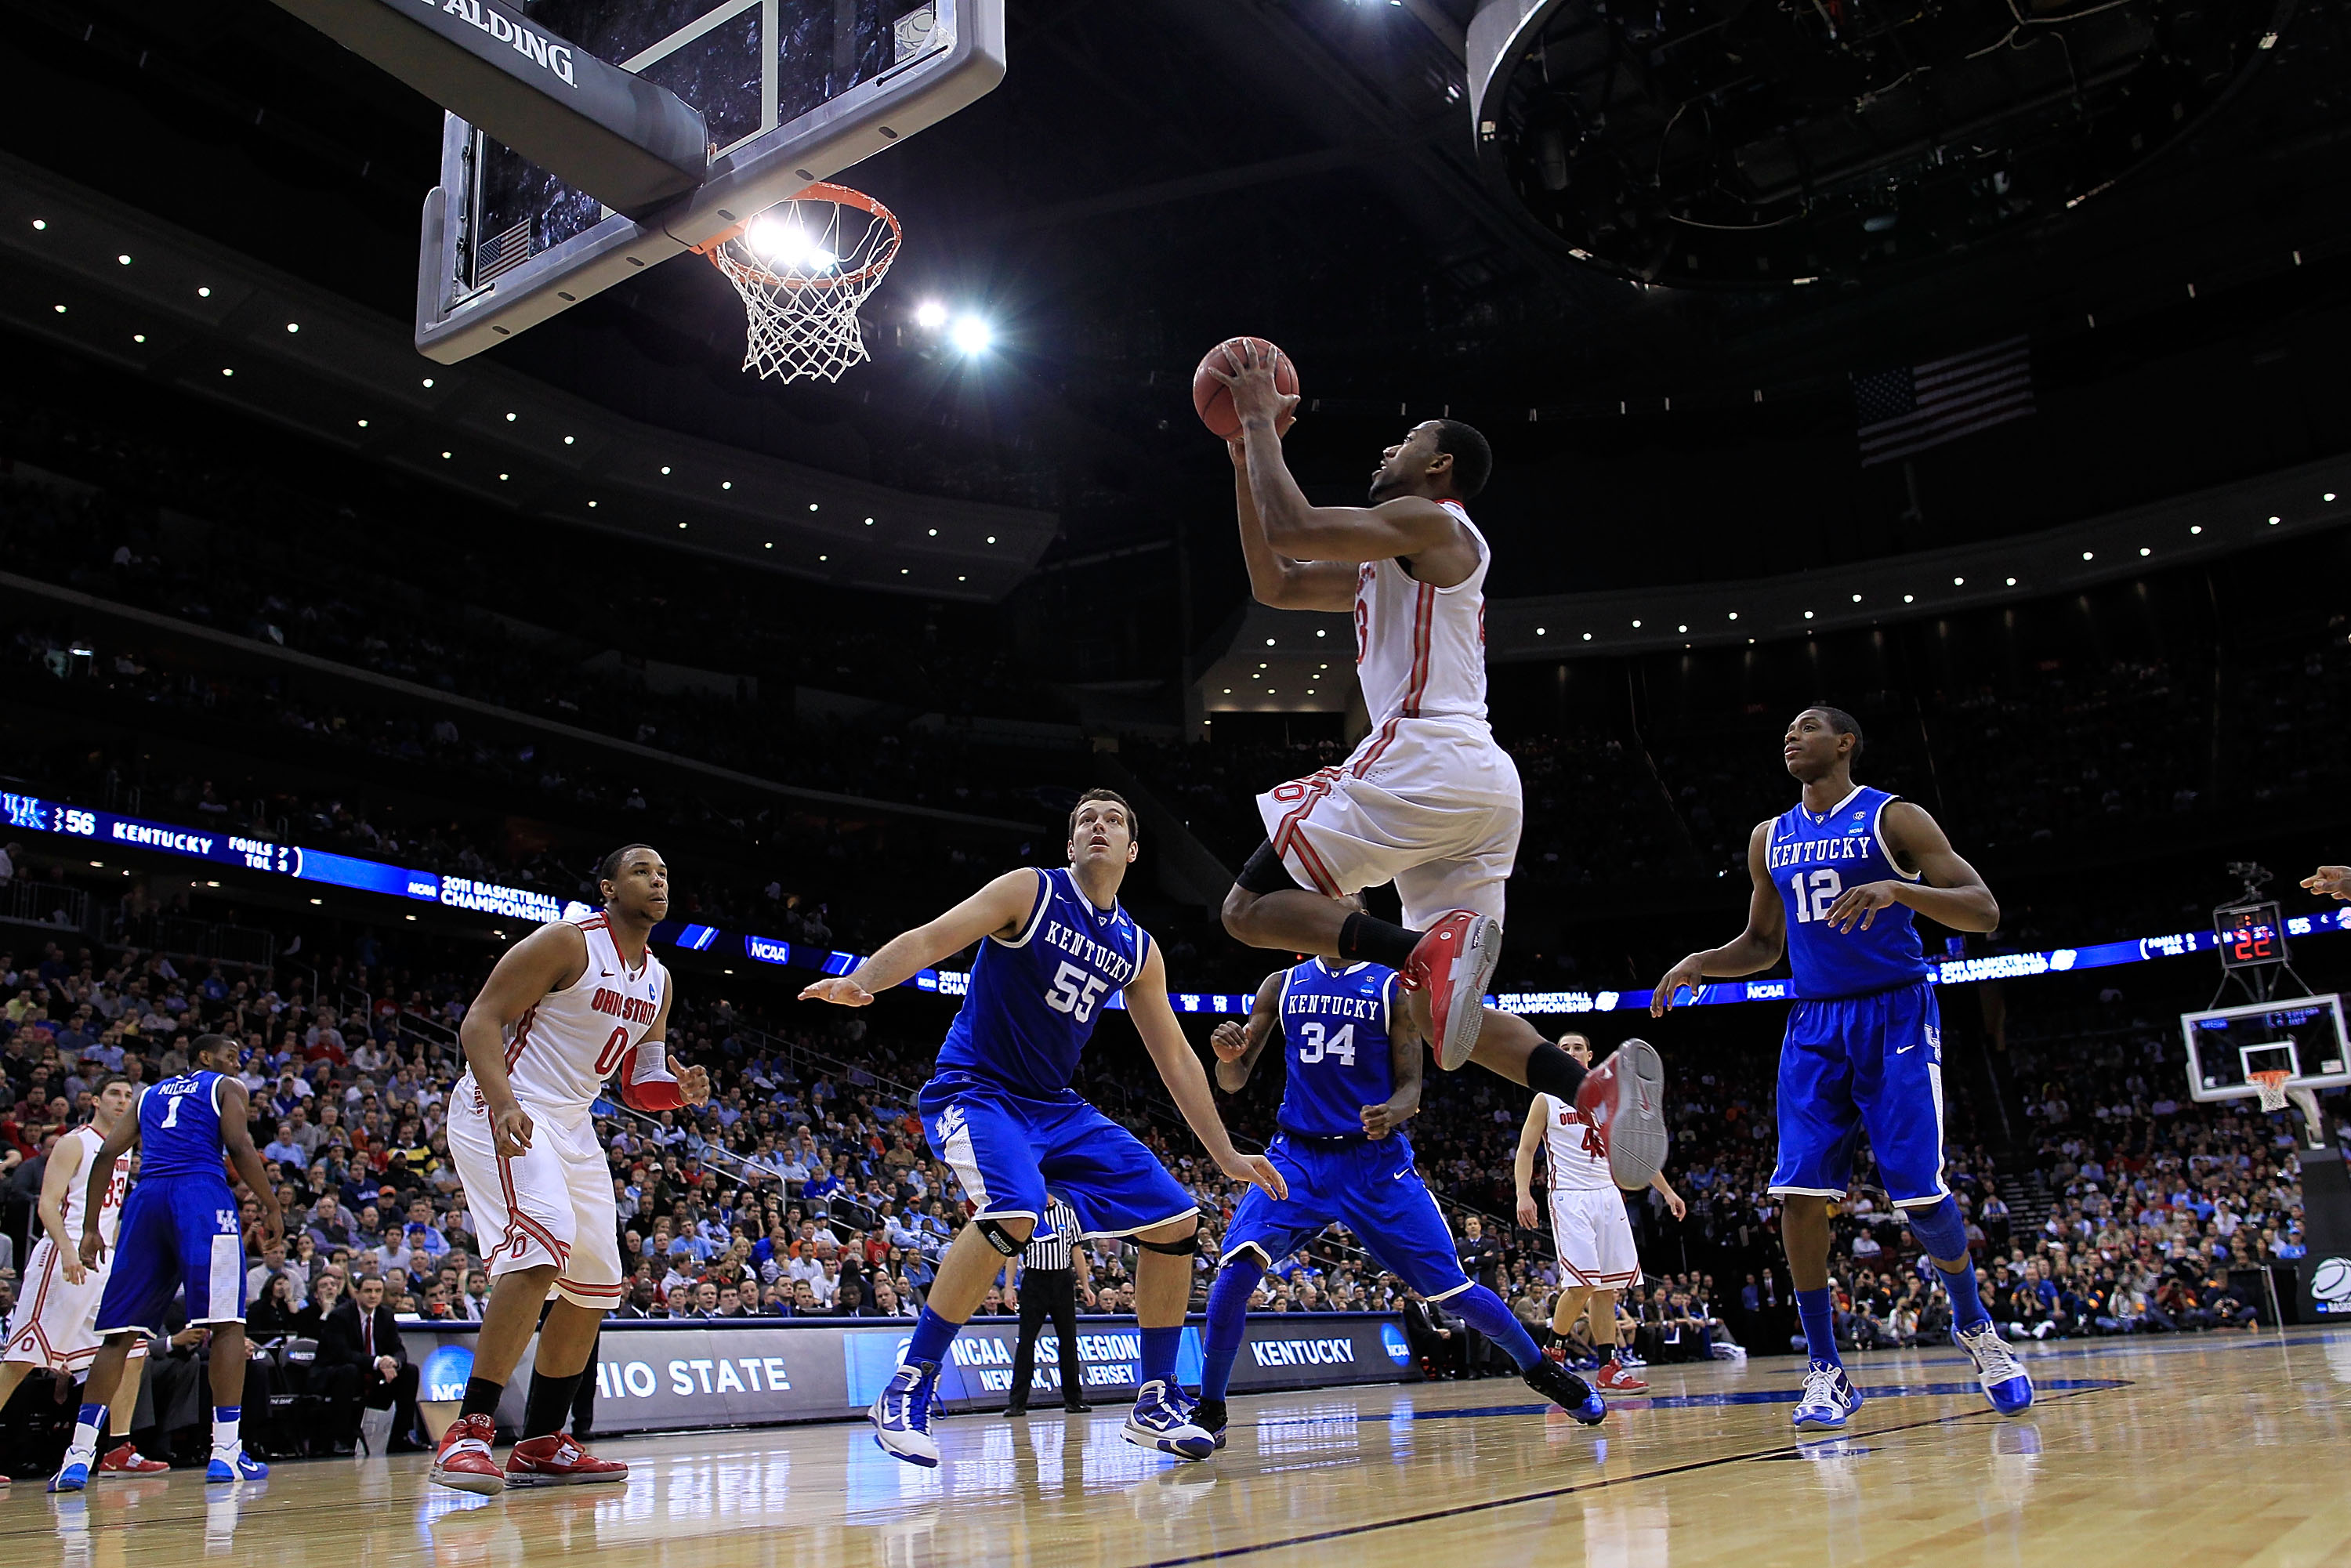 NEWARK, NJ - MARCH 25:  David Lighty #23 of the Ohio State Buckeyes dunks against the Kentucky Wildcats during the east regional semifinal of the 2011 NCAA Men's Basketball Tournament at the Prudential Center on March 25, 2011 in Newark, New Jersey.  (Pho